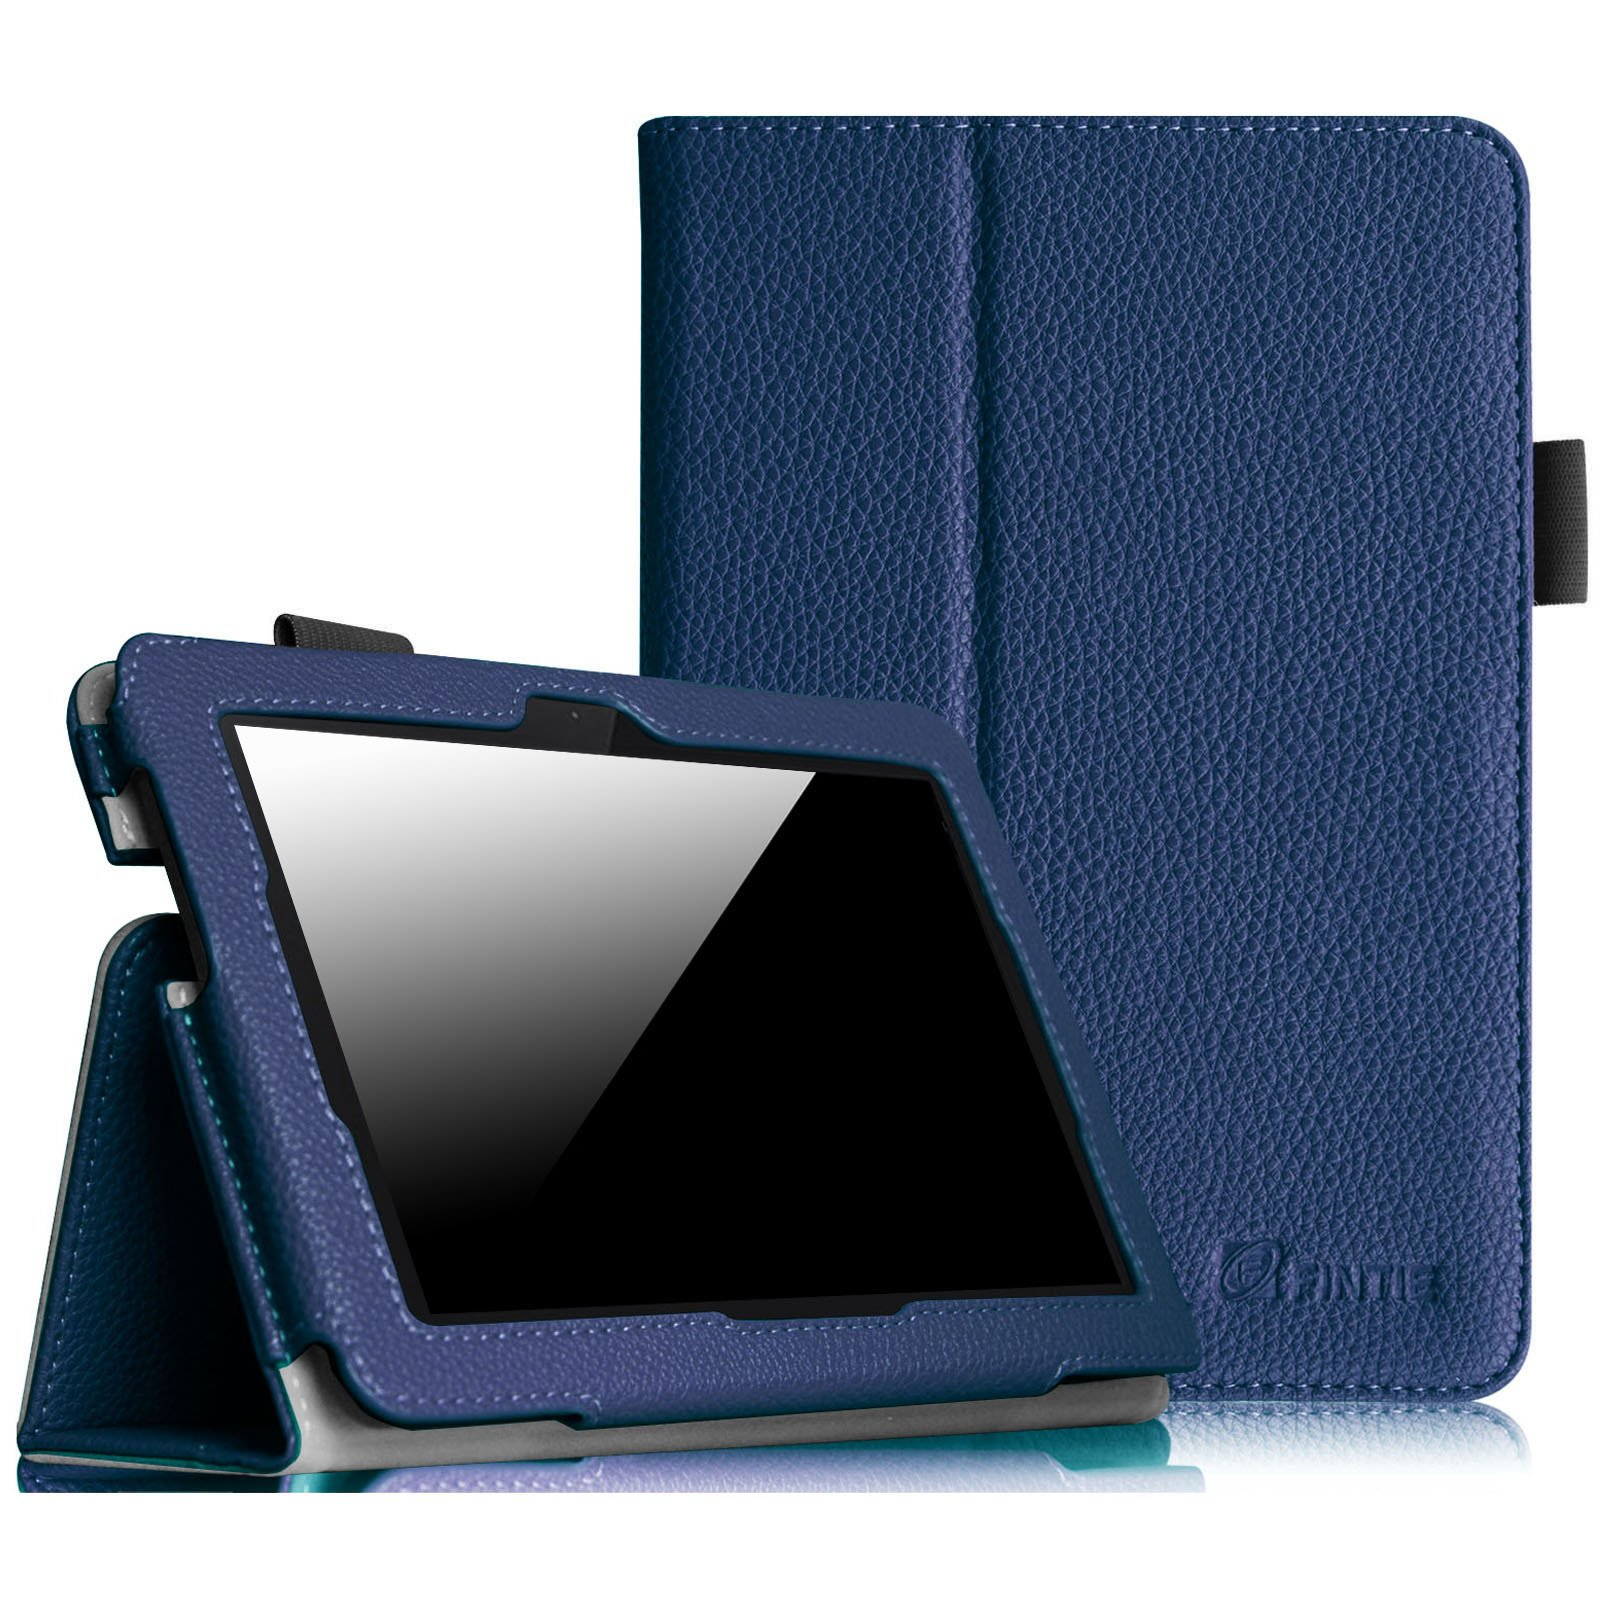 Fintie Folio Case for Fire HDX 7 - Slim Fit Leather Standing Protective Cover with Auto Sleep/Wake (will only fit Kindle Fire HDX 7'' 2013), Navy